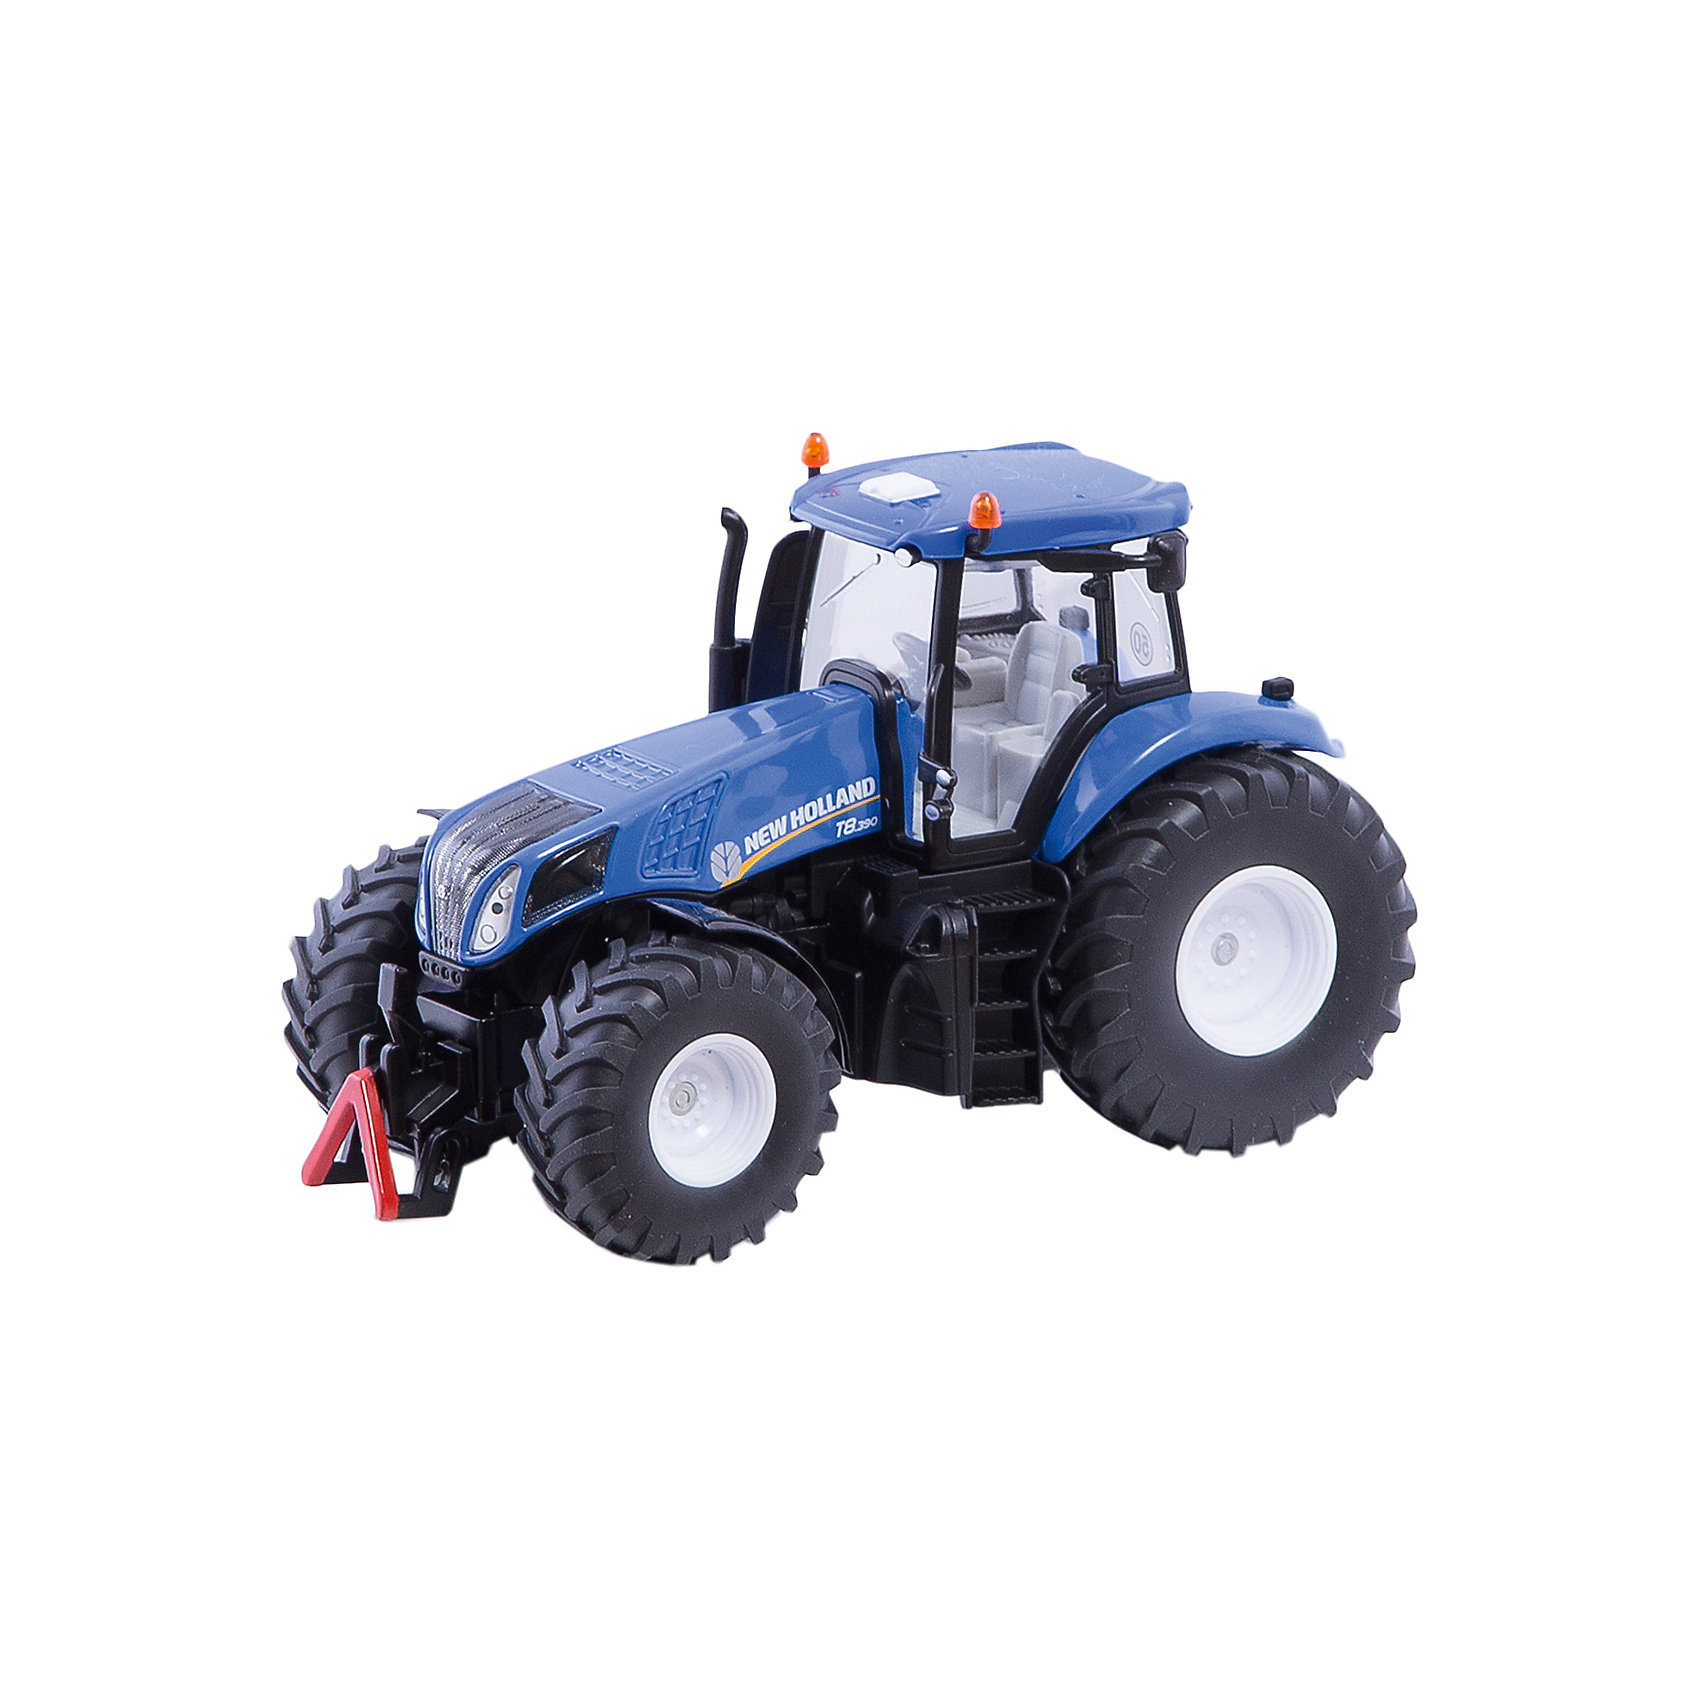 SIKU Трактор New Holland, синий (1:32), SIKU tomy трактор new holland t7 270 с 3 лет